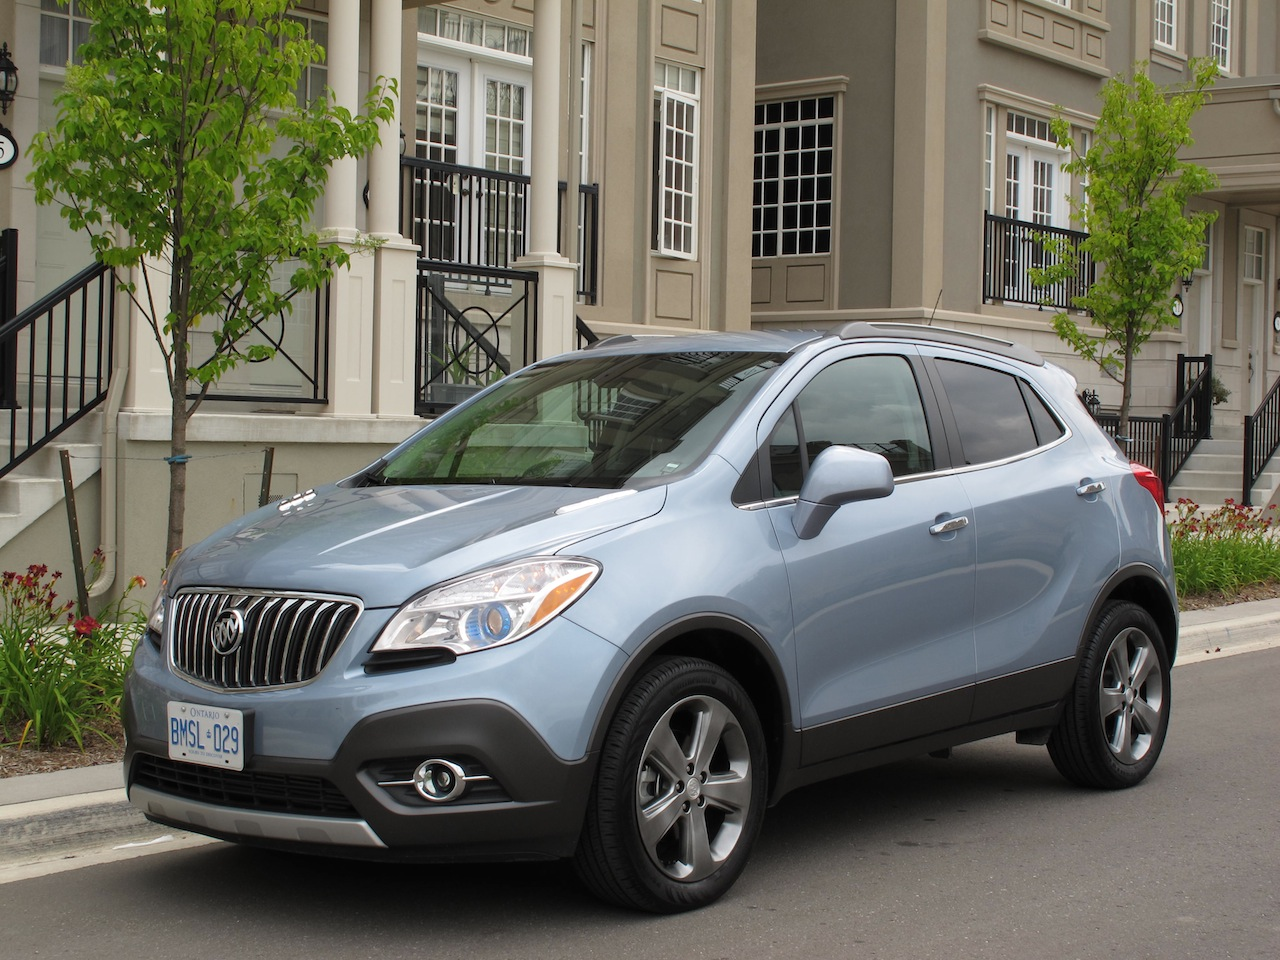 2014 buick encore photo gallery cars photos test drives and. Cars Review. Best American Auto & Cars Review